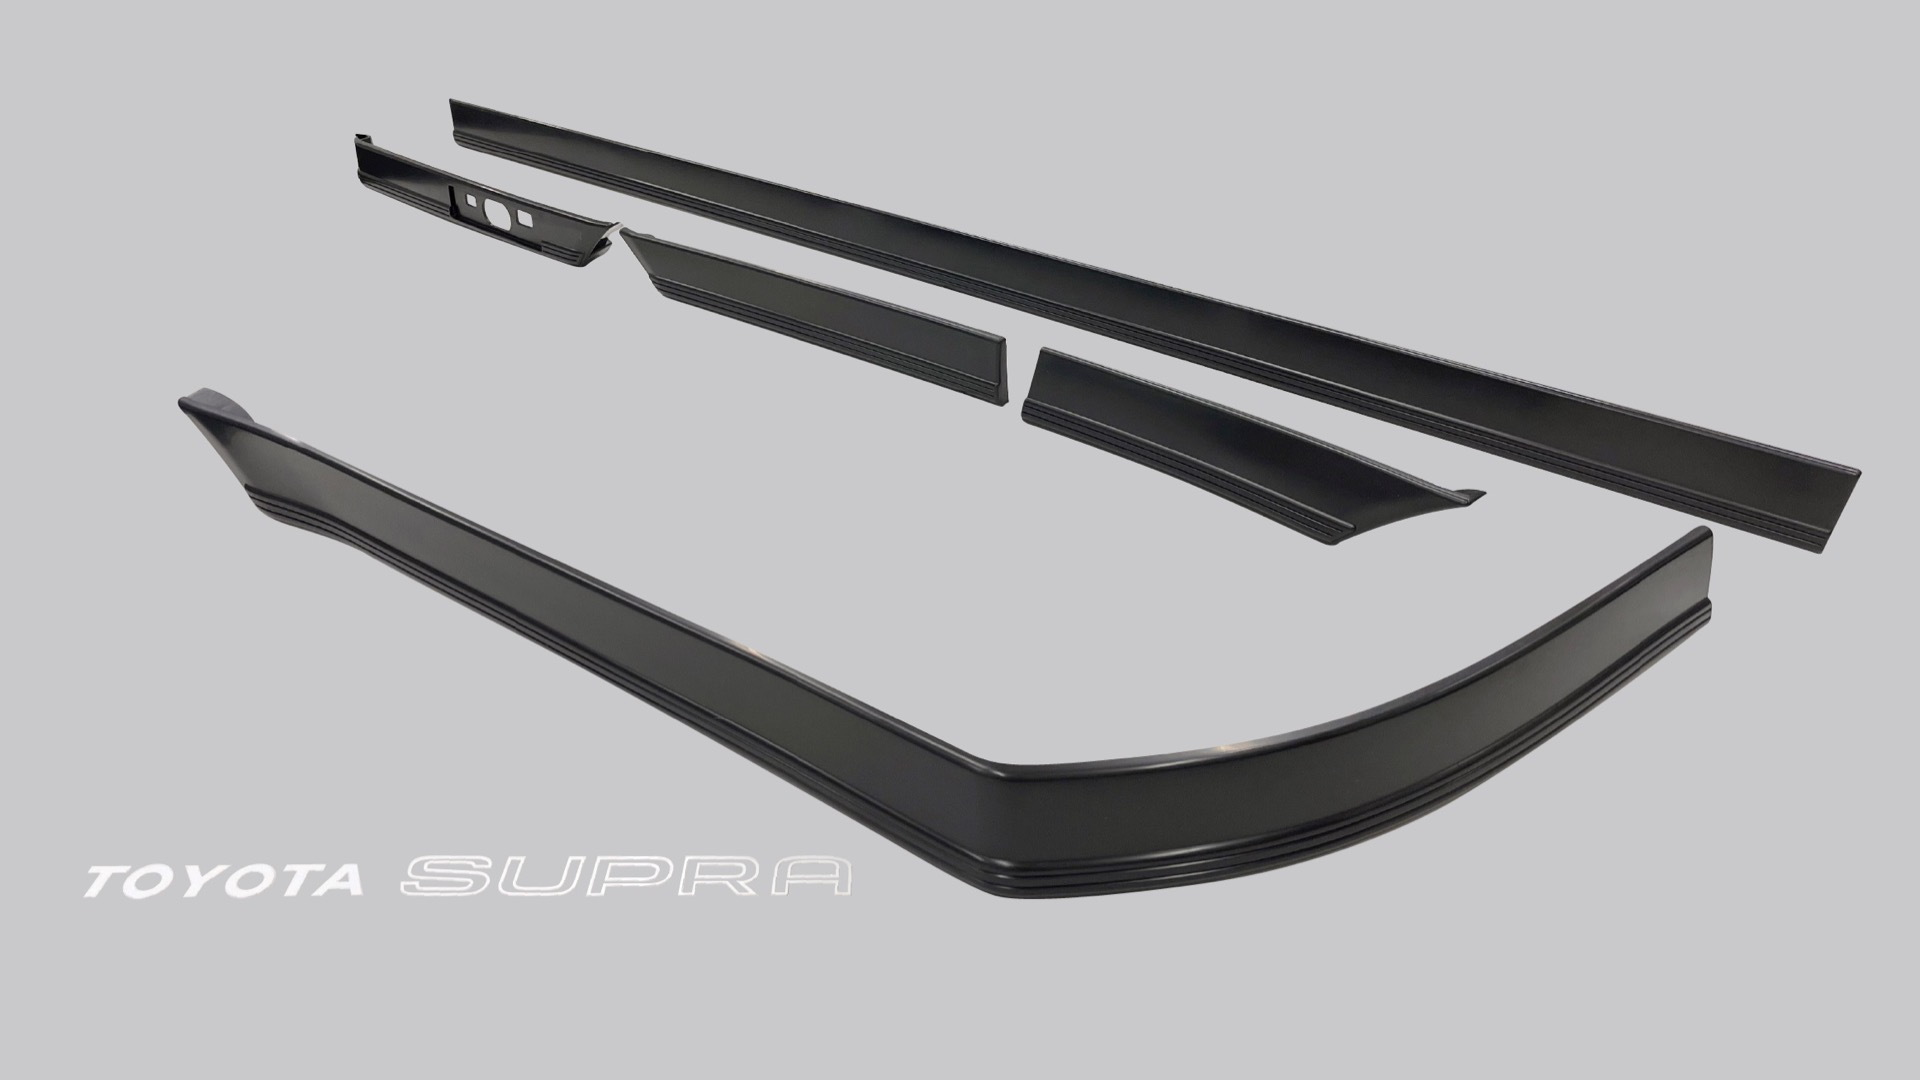 A70 Toyota Supra replacement side-protection molding